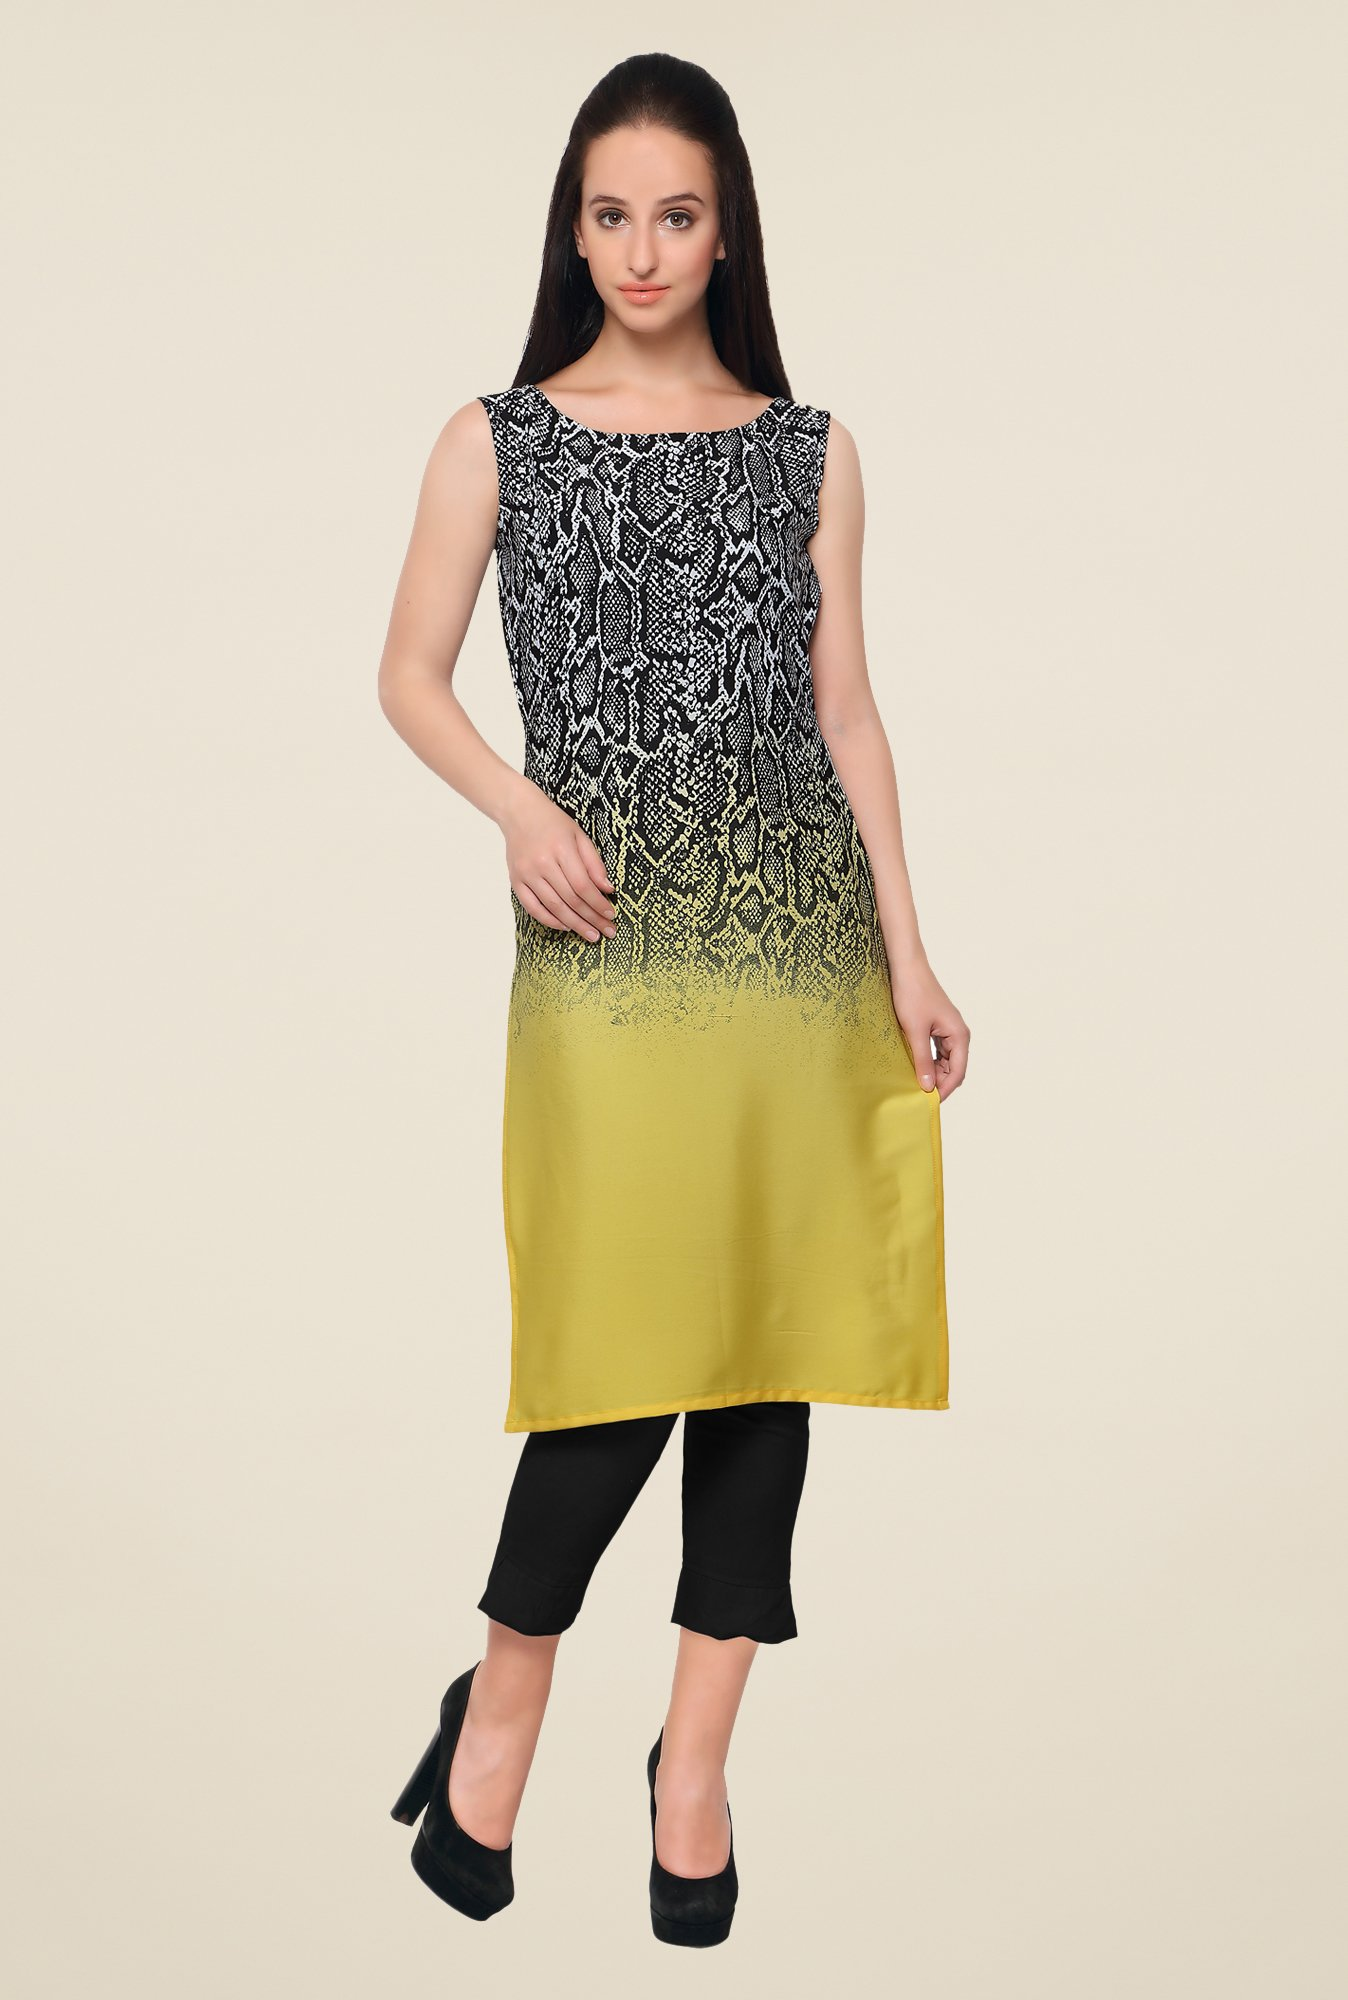 Ahalyaa Black & Yellow Printed Kurta